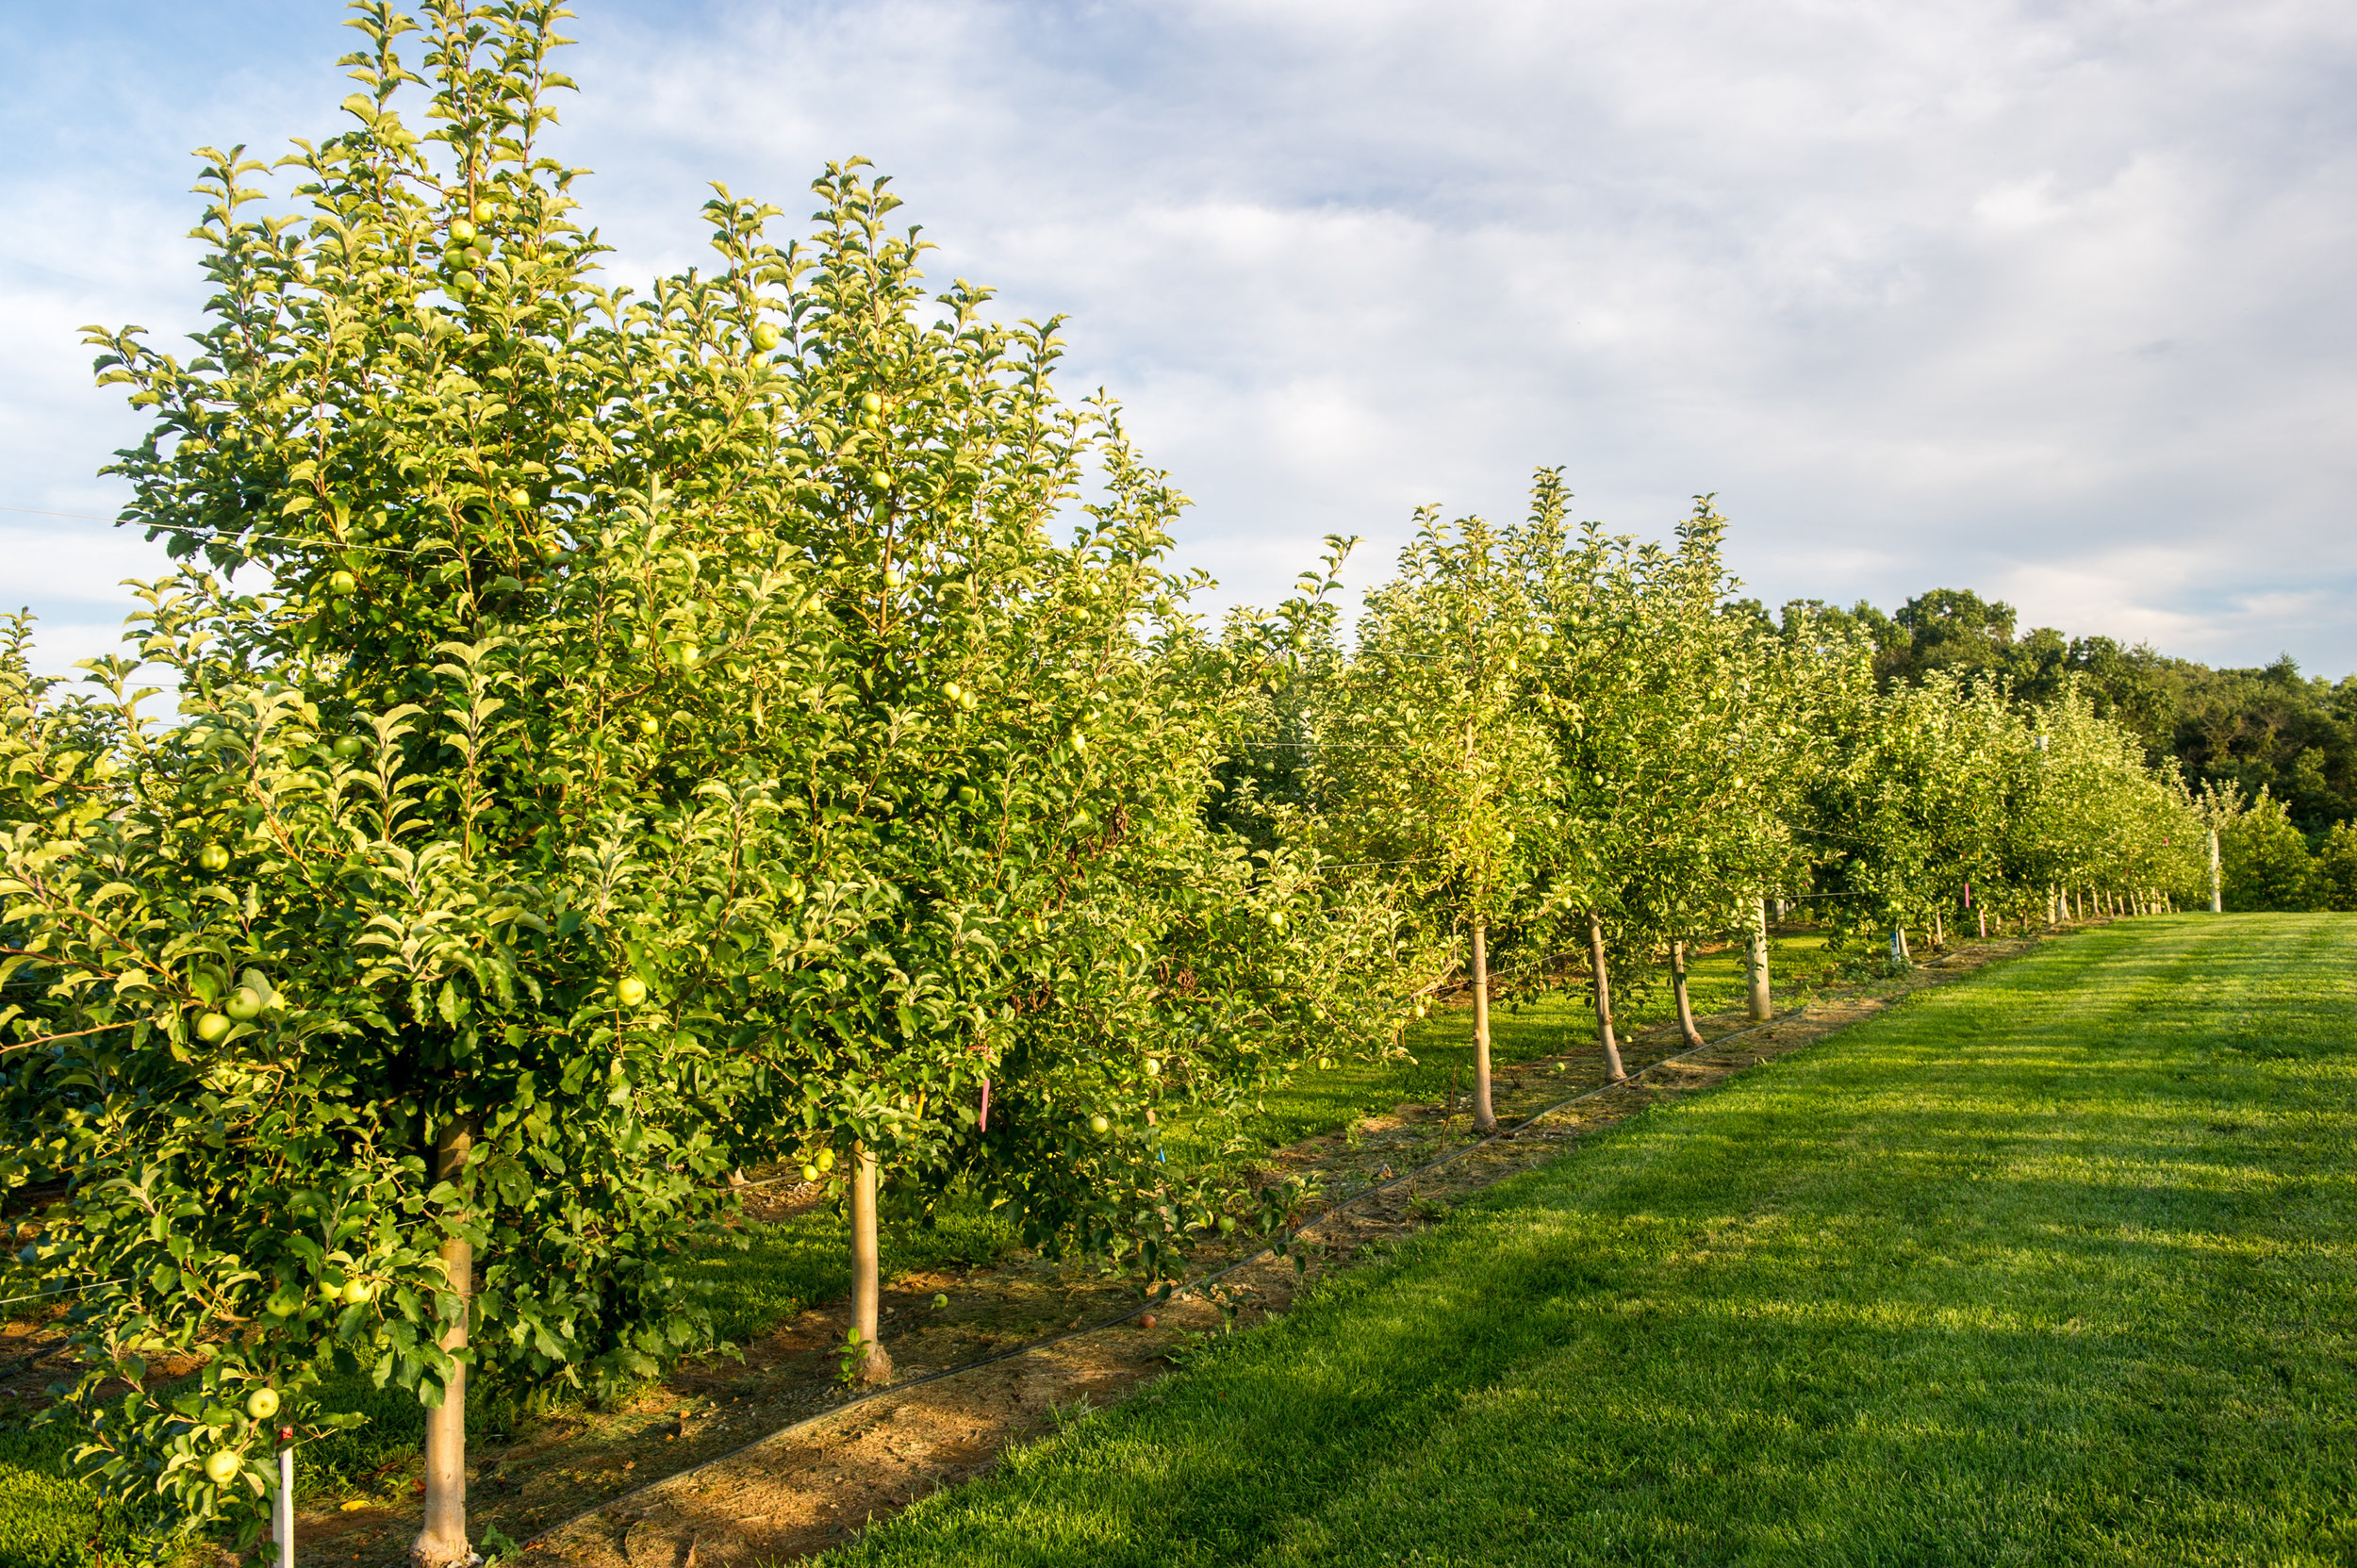 The image shows an orchard. Photo by Edwin Remsberg.